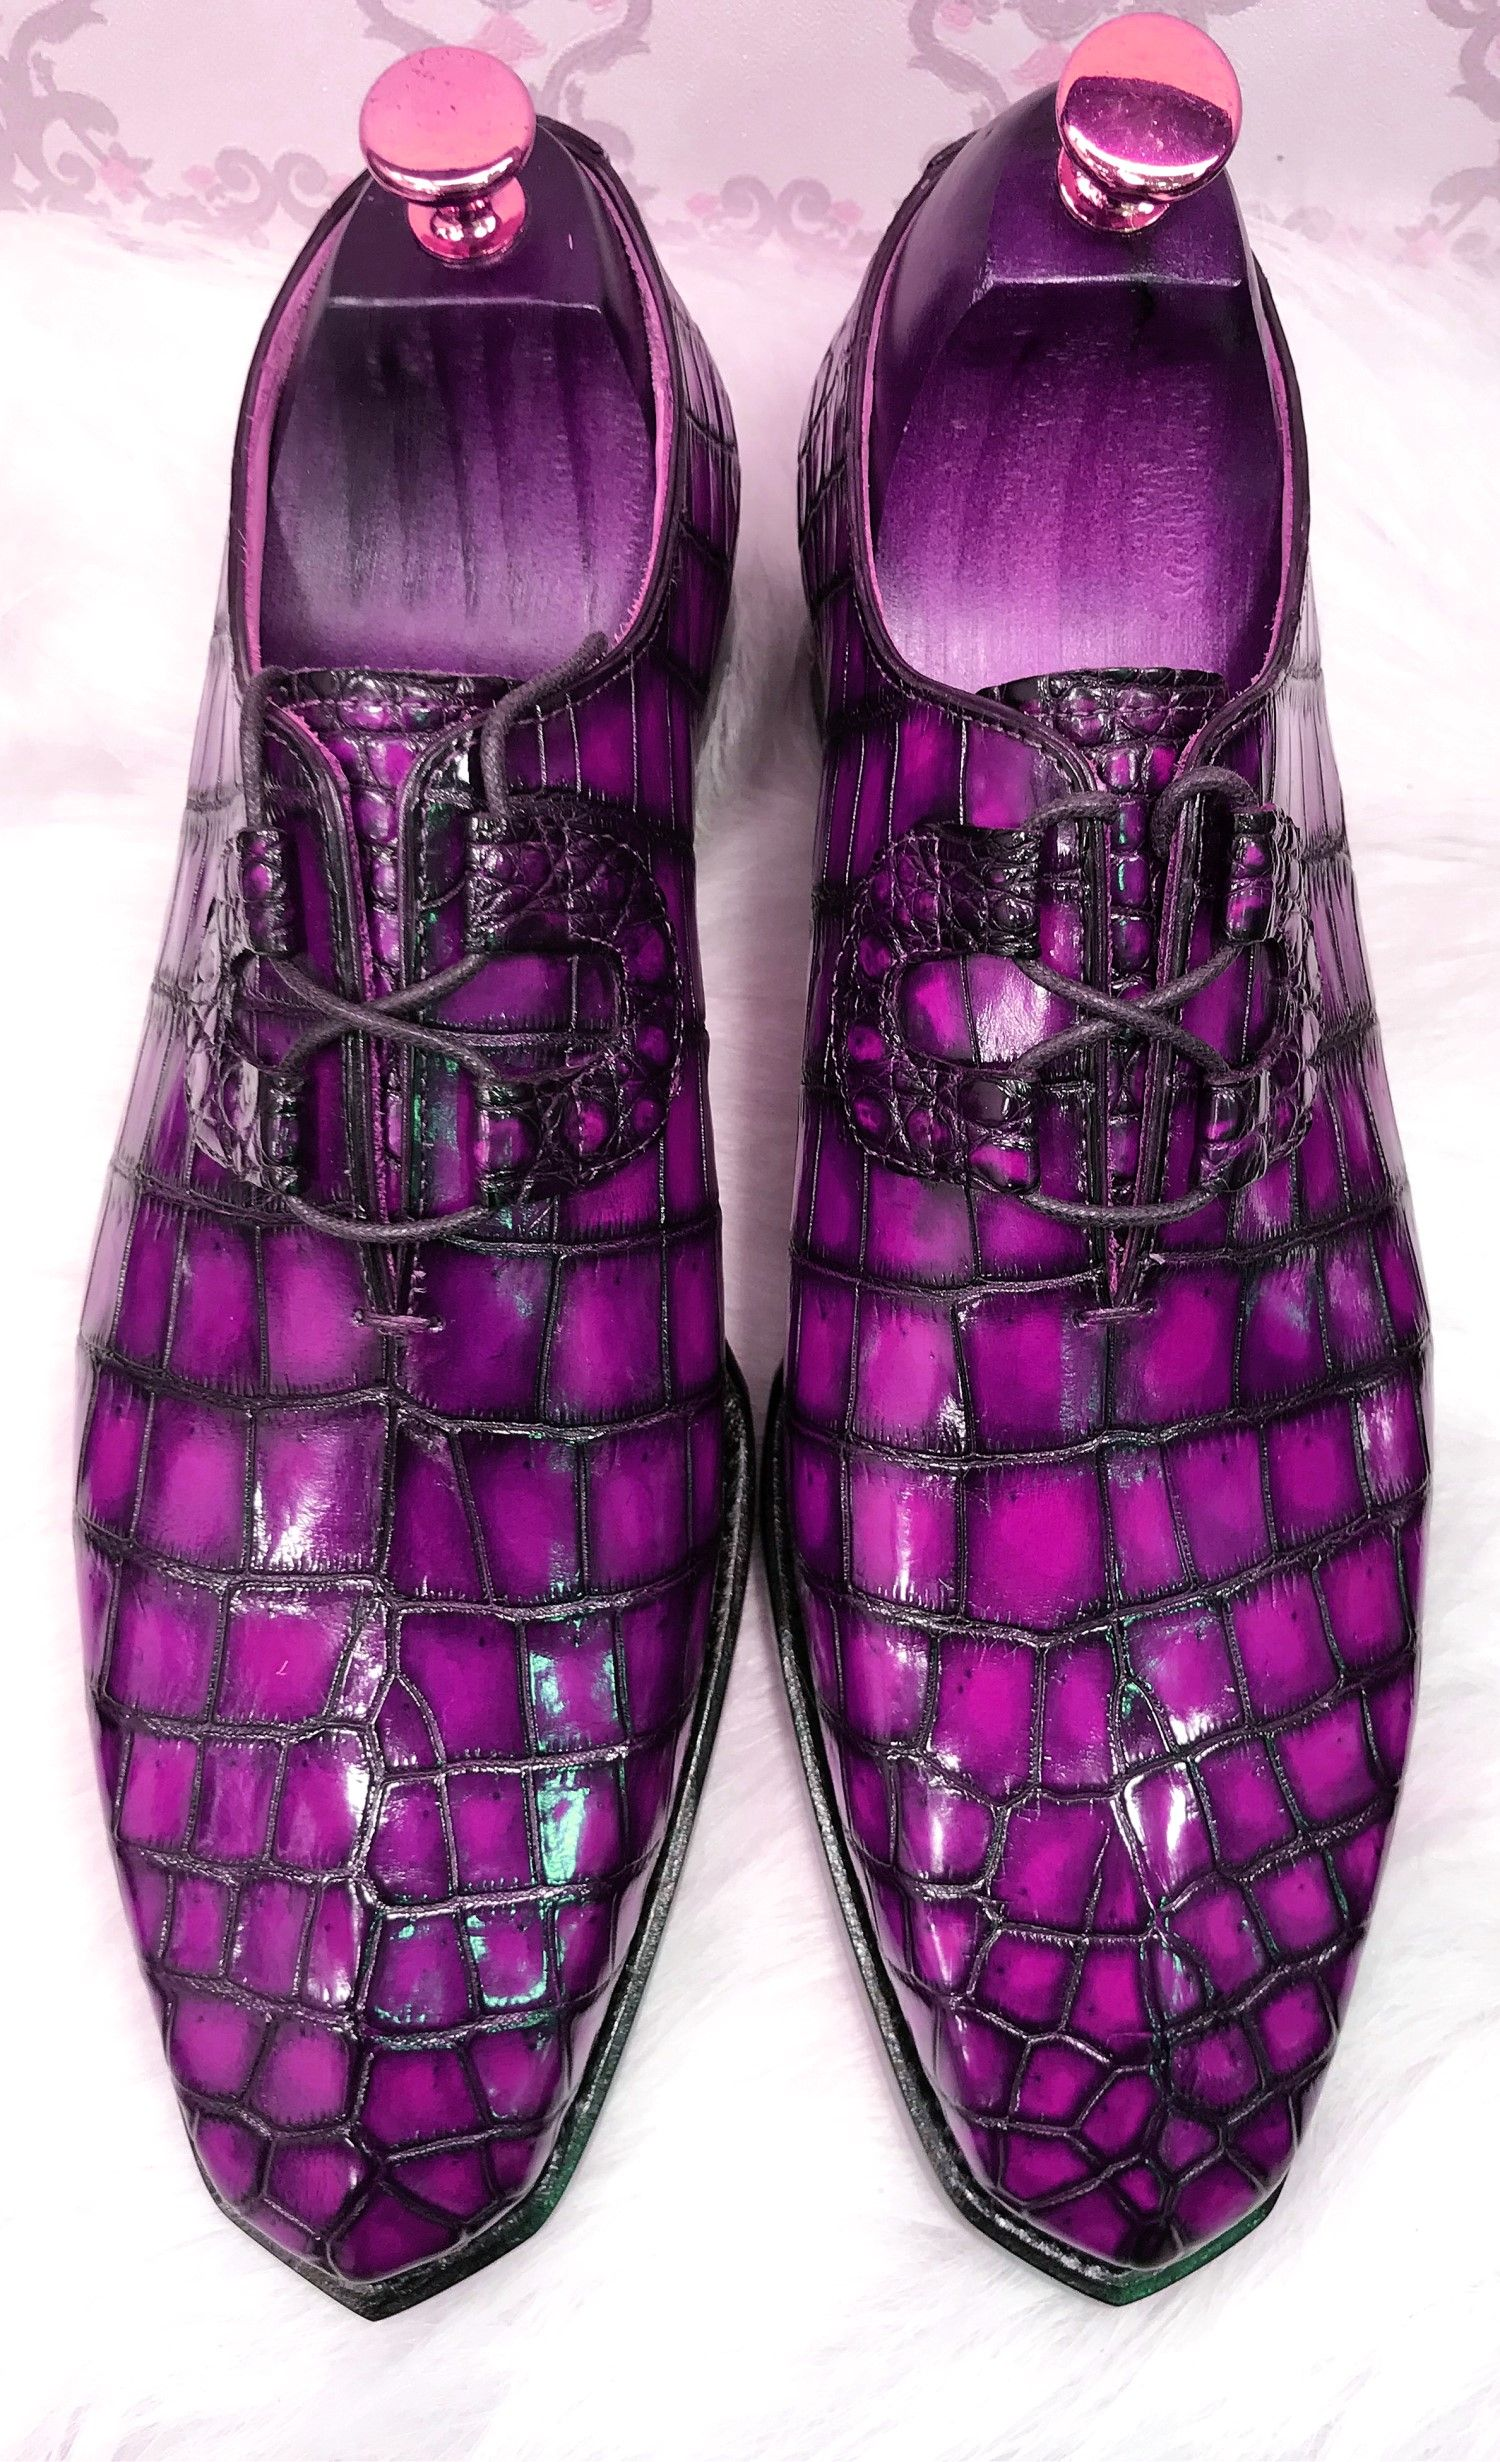 Handcrafted Men S Classic Alligator Leather Dress Shoes Purple Leather Dress Shoes Dress Shoes Men Alligator Dress Shoes